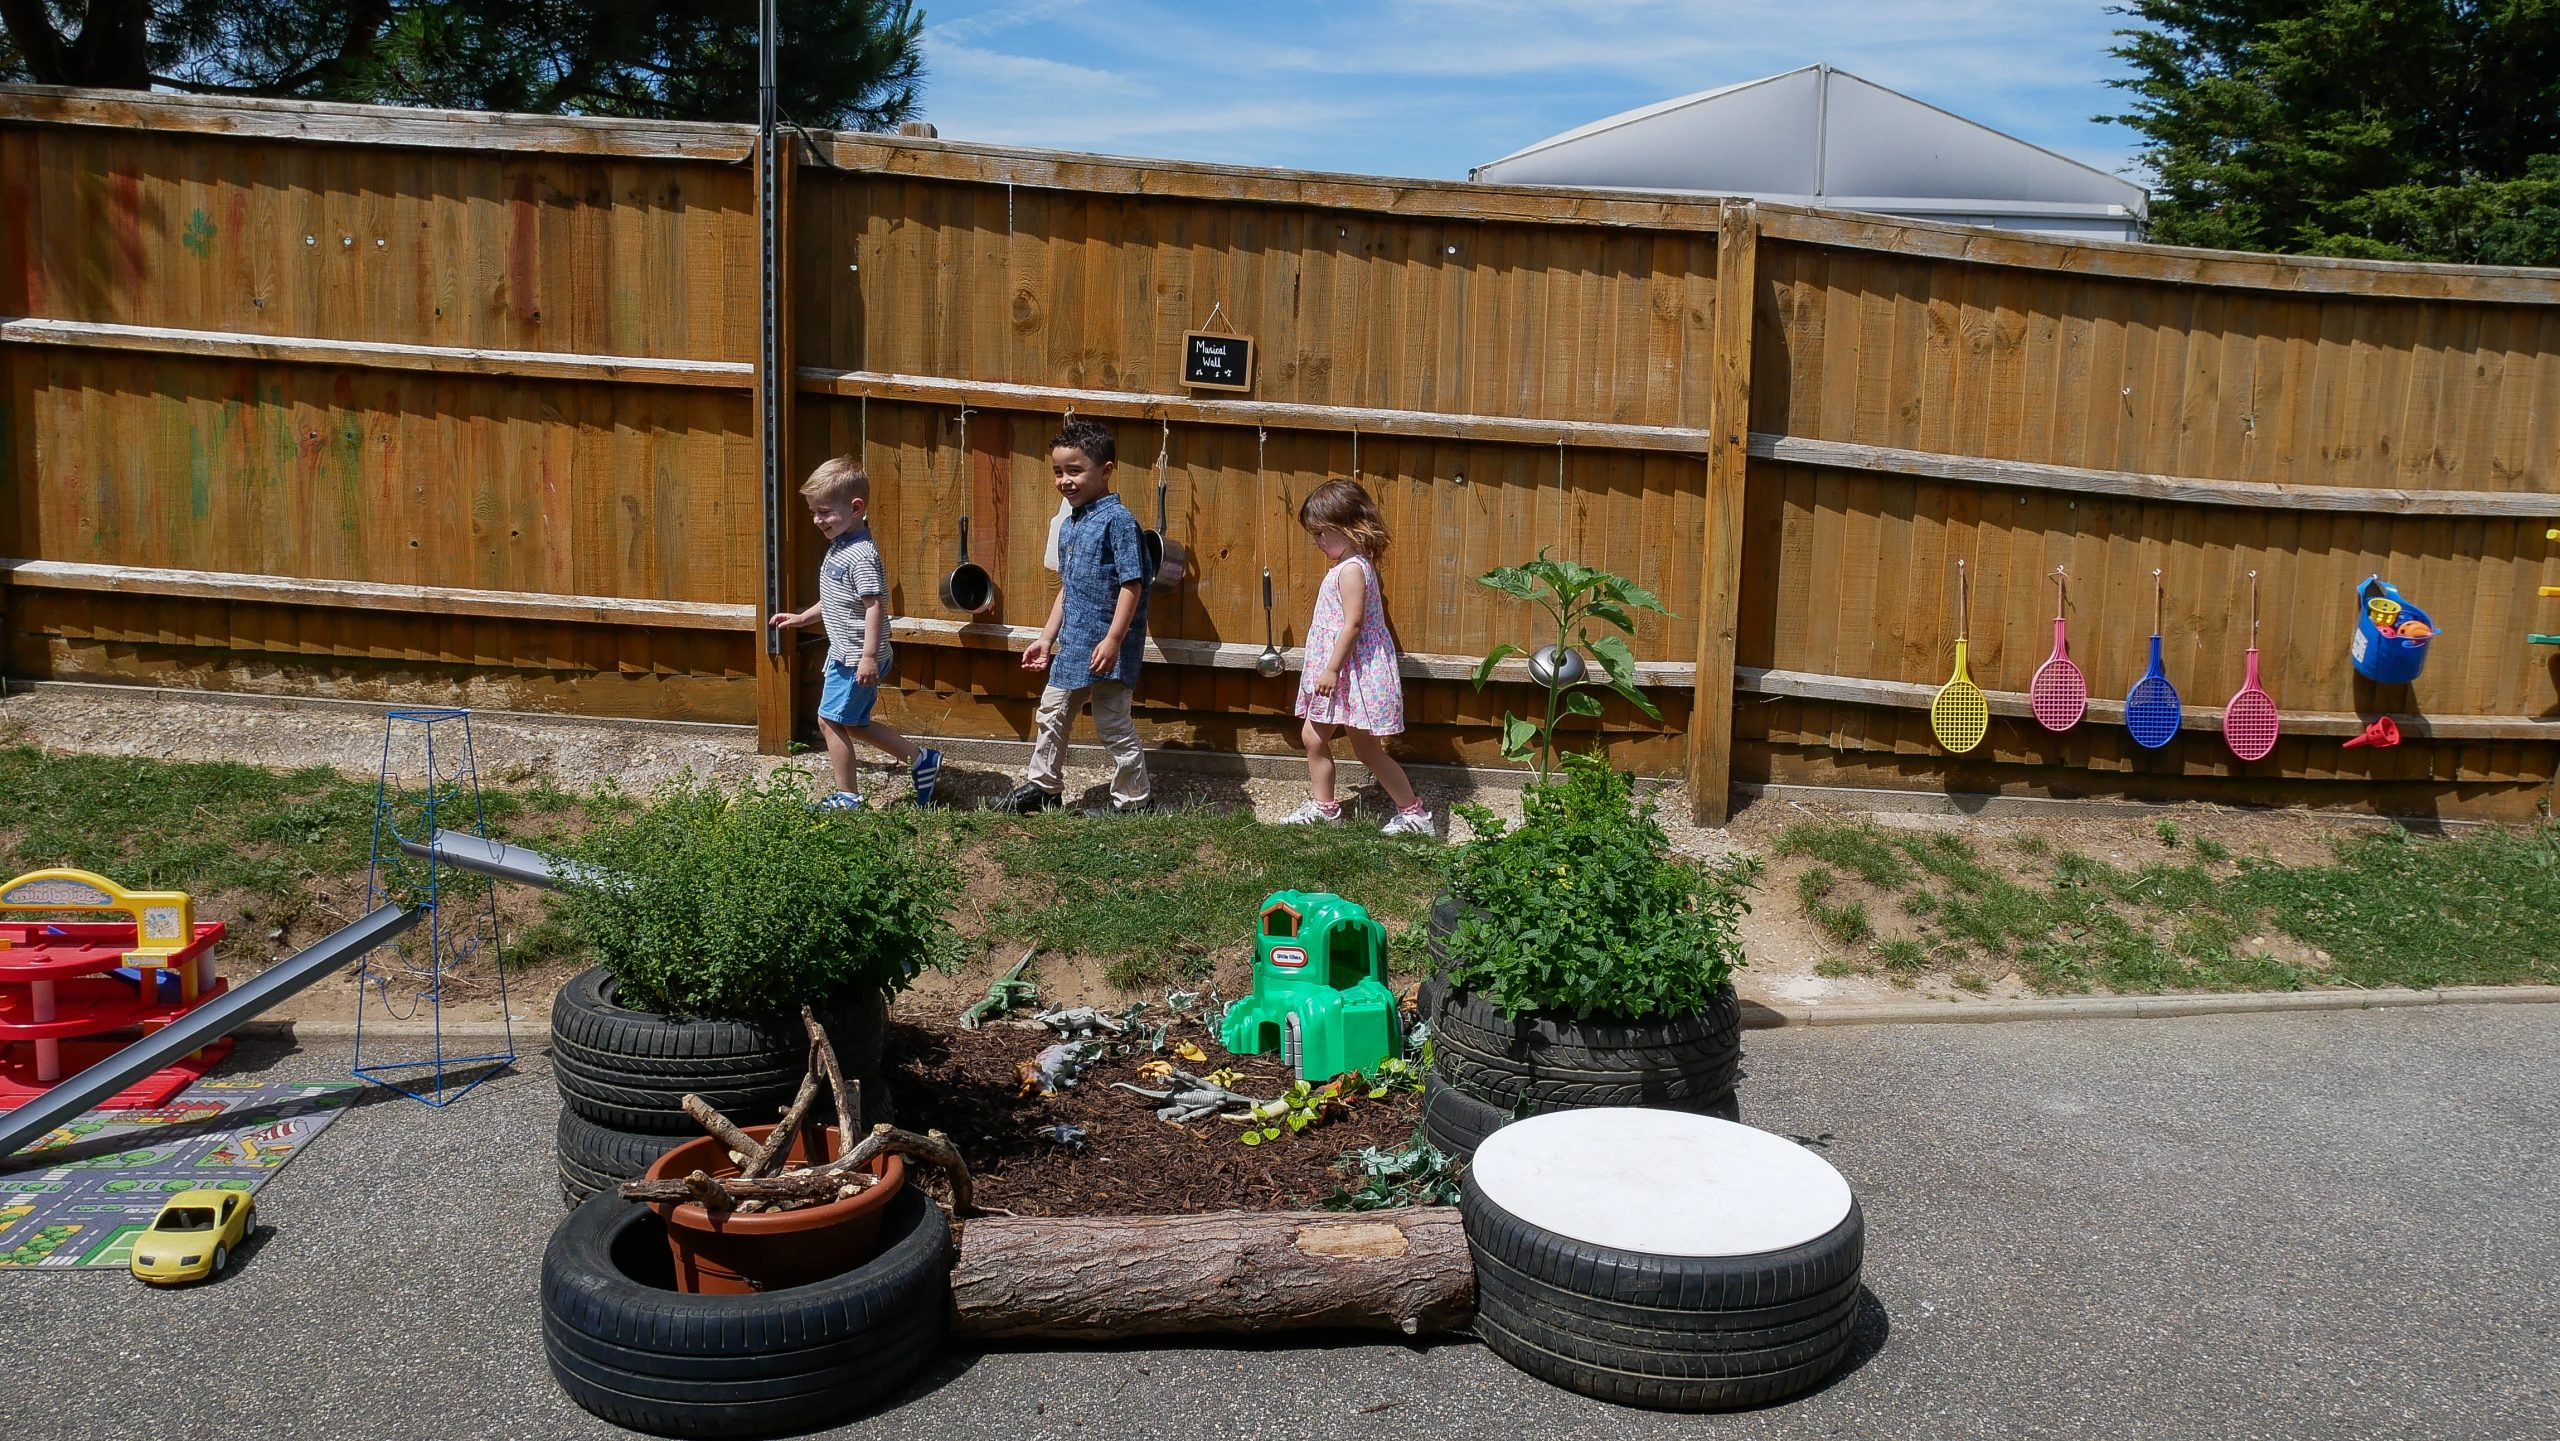 children outdoors play